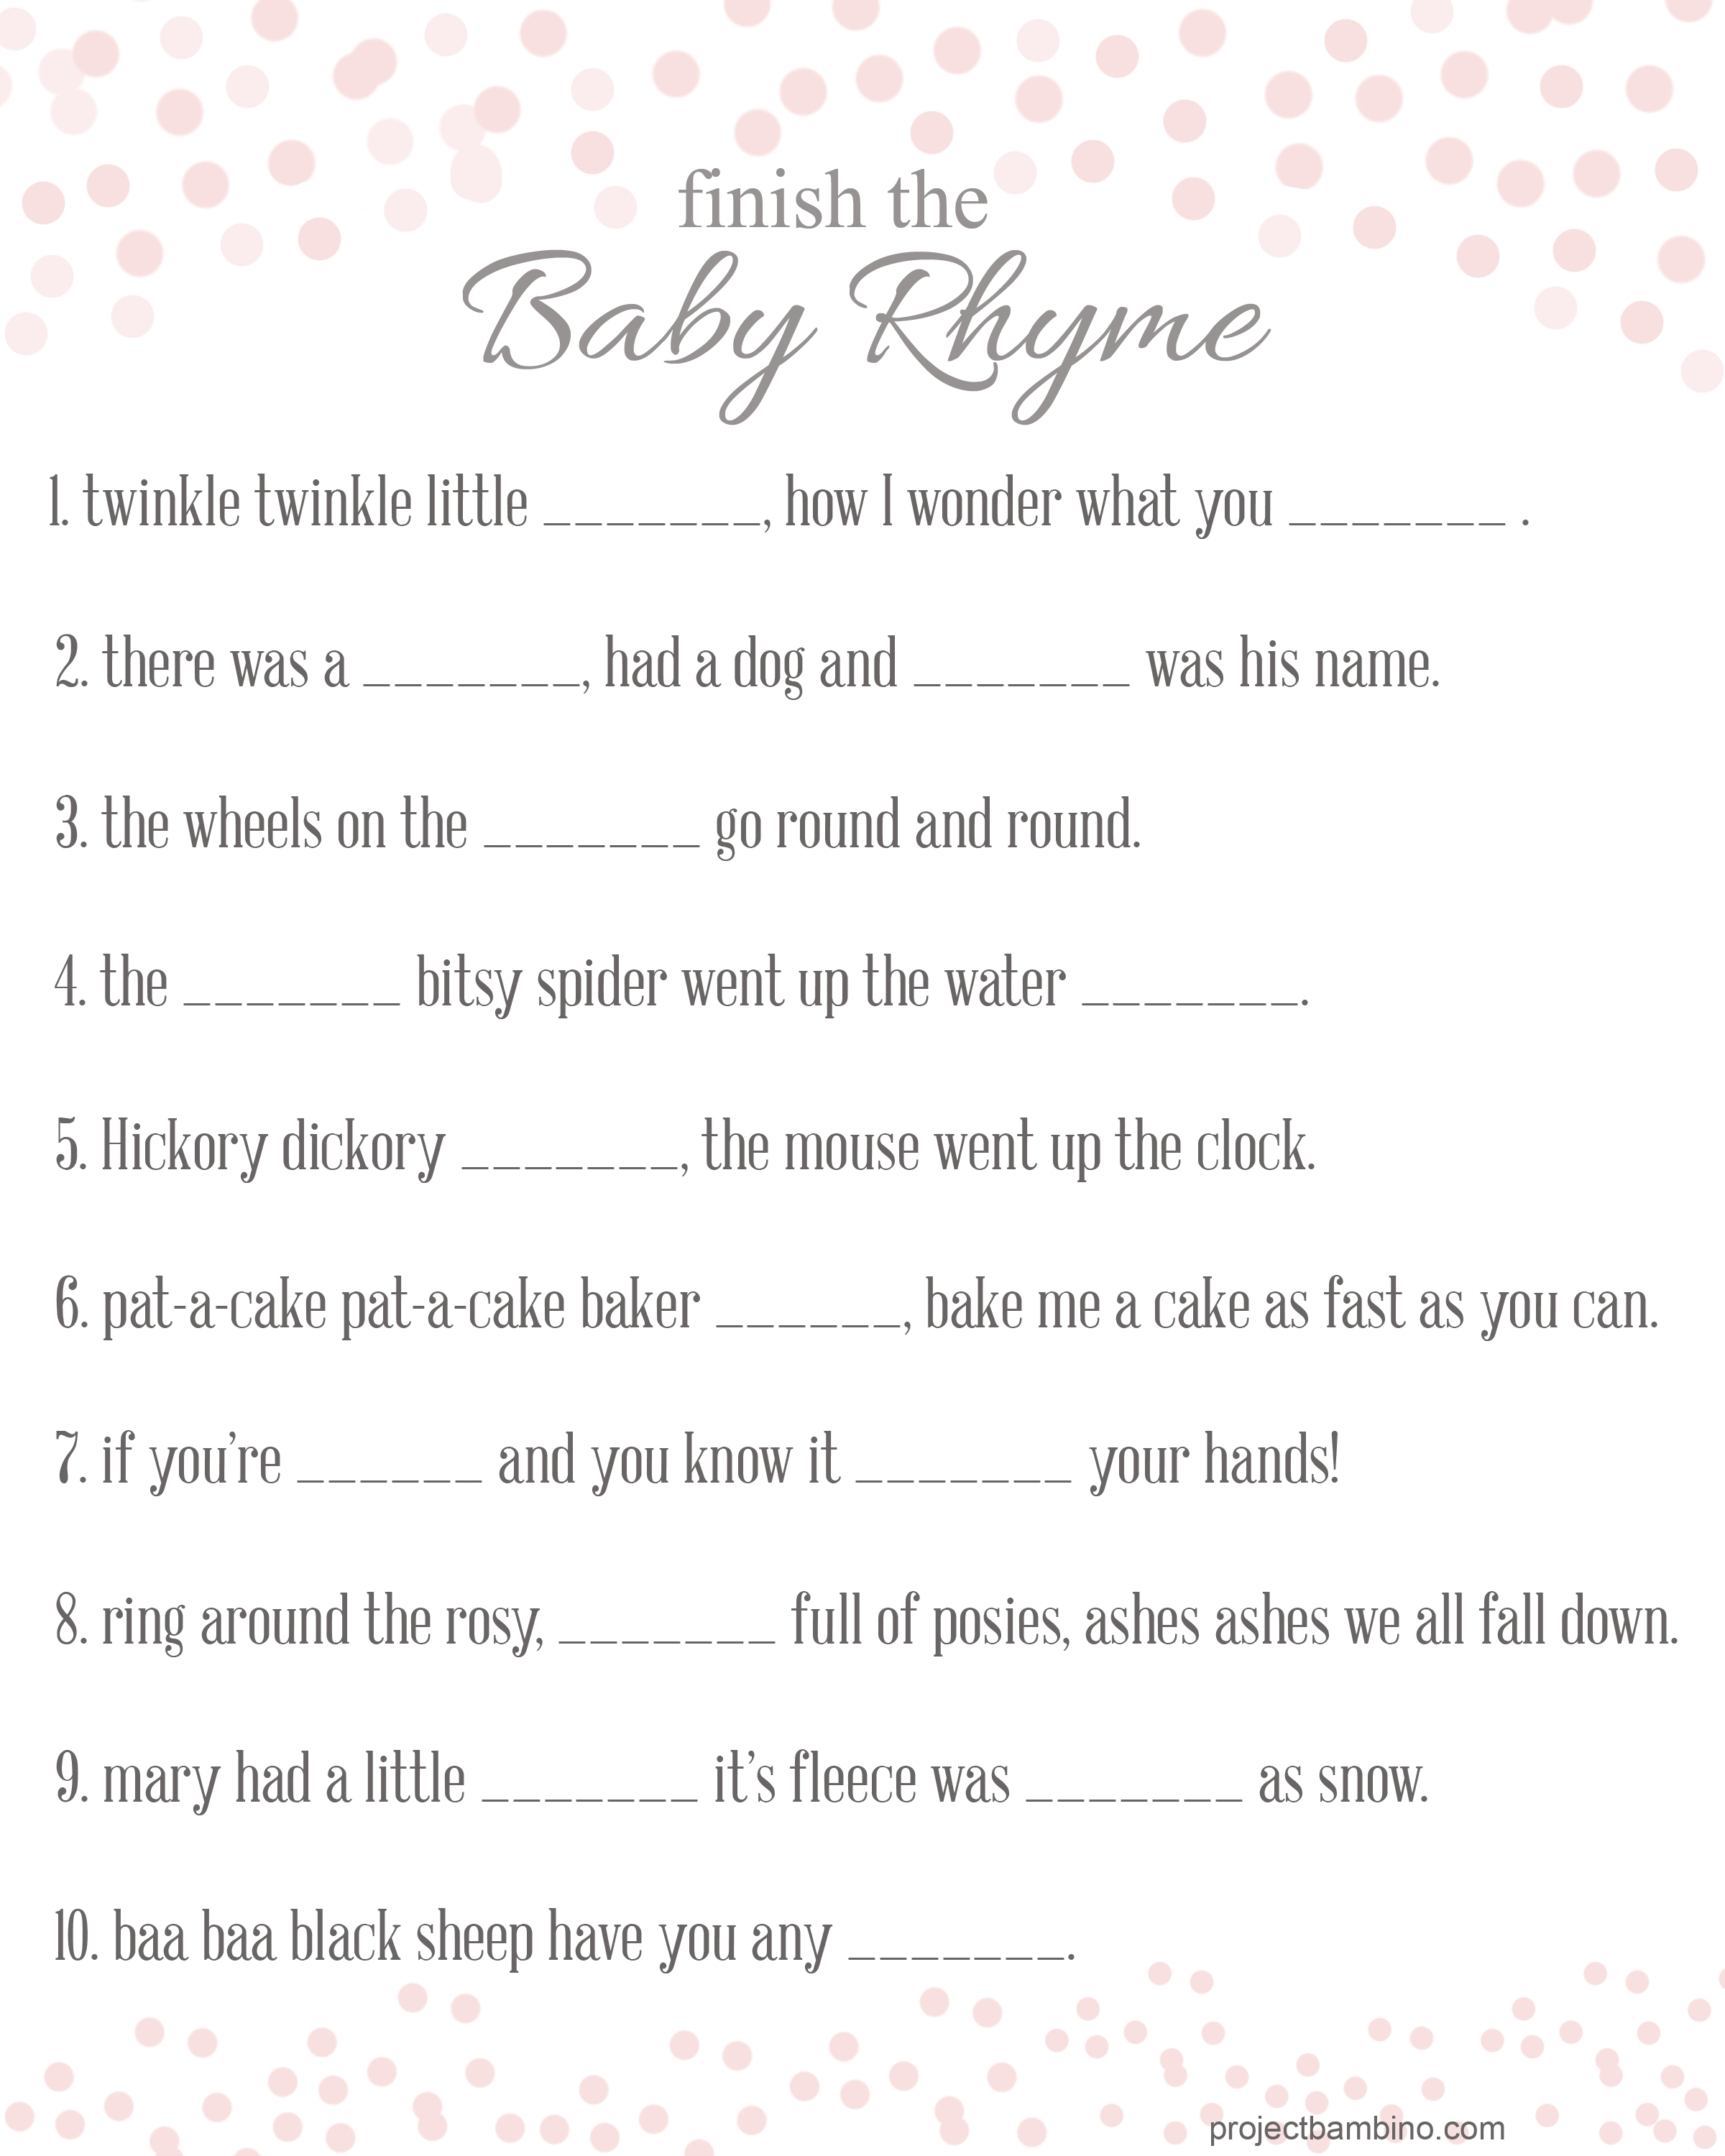 10 Perfect Baby Shower Game Ideas For A Girl